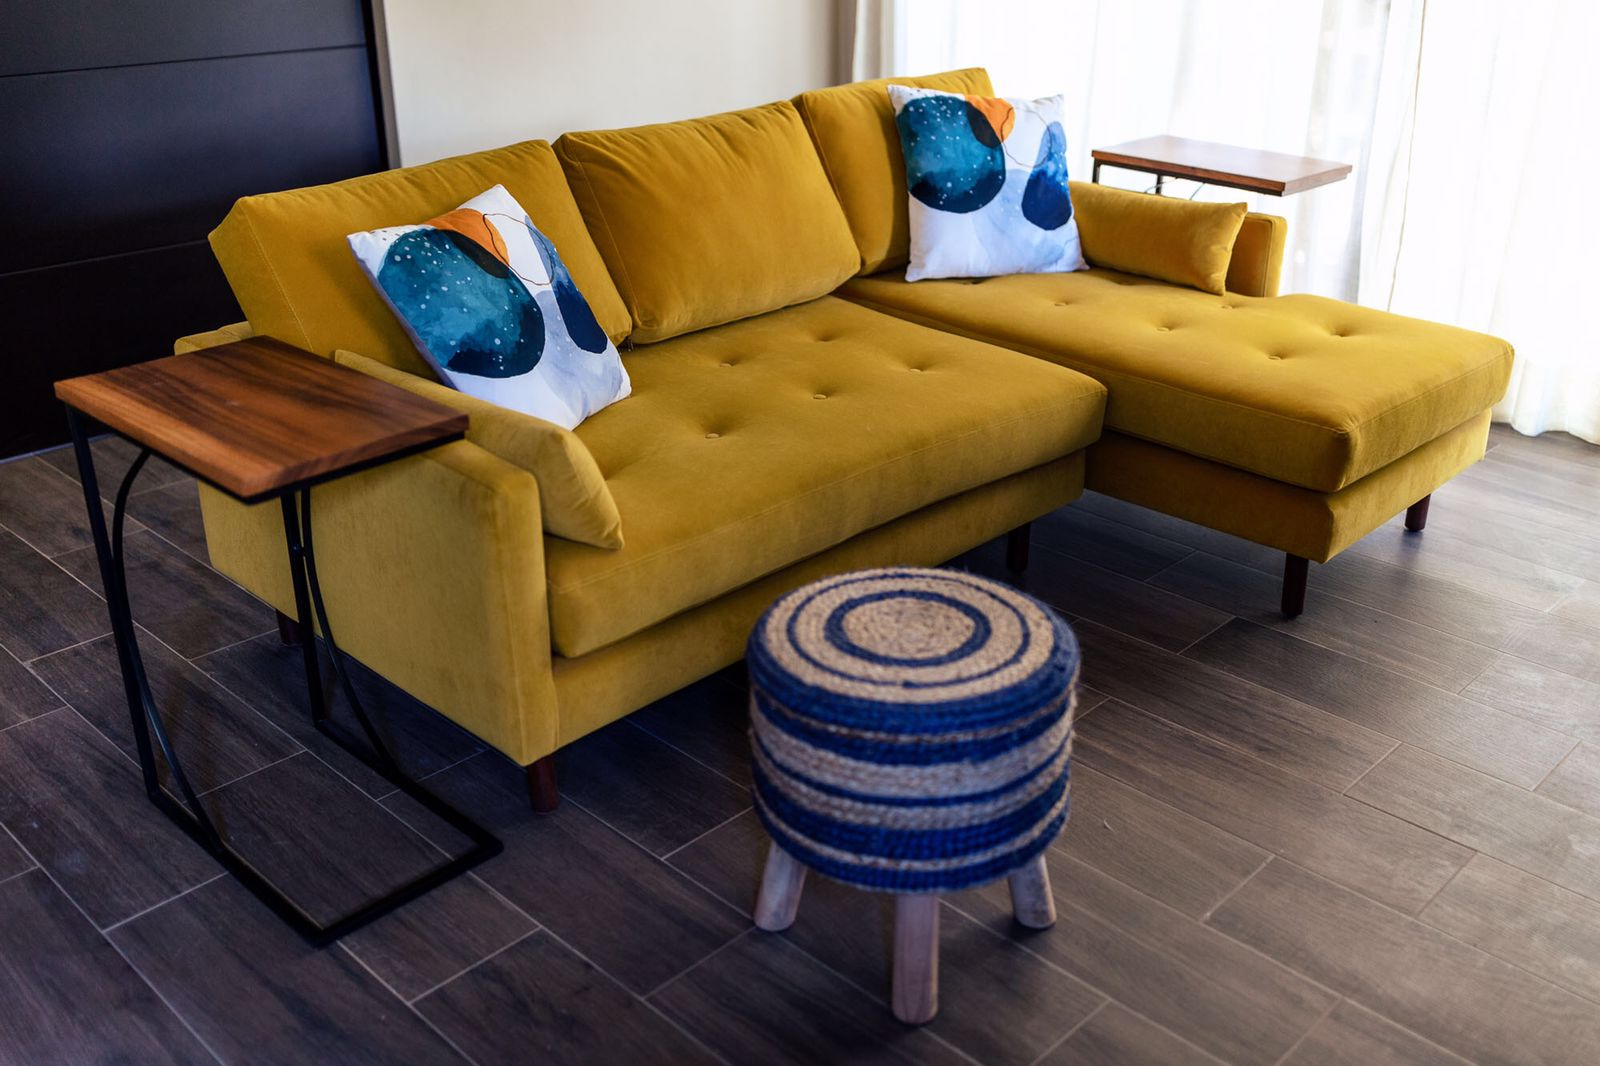 bold mustard yellow couch